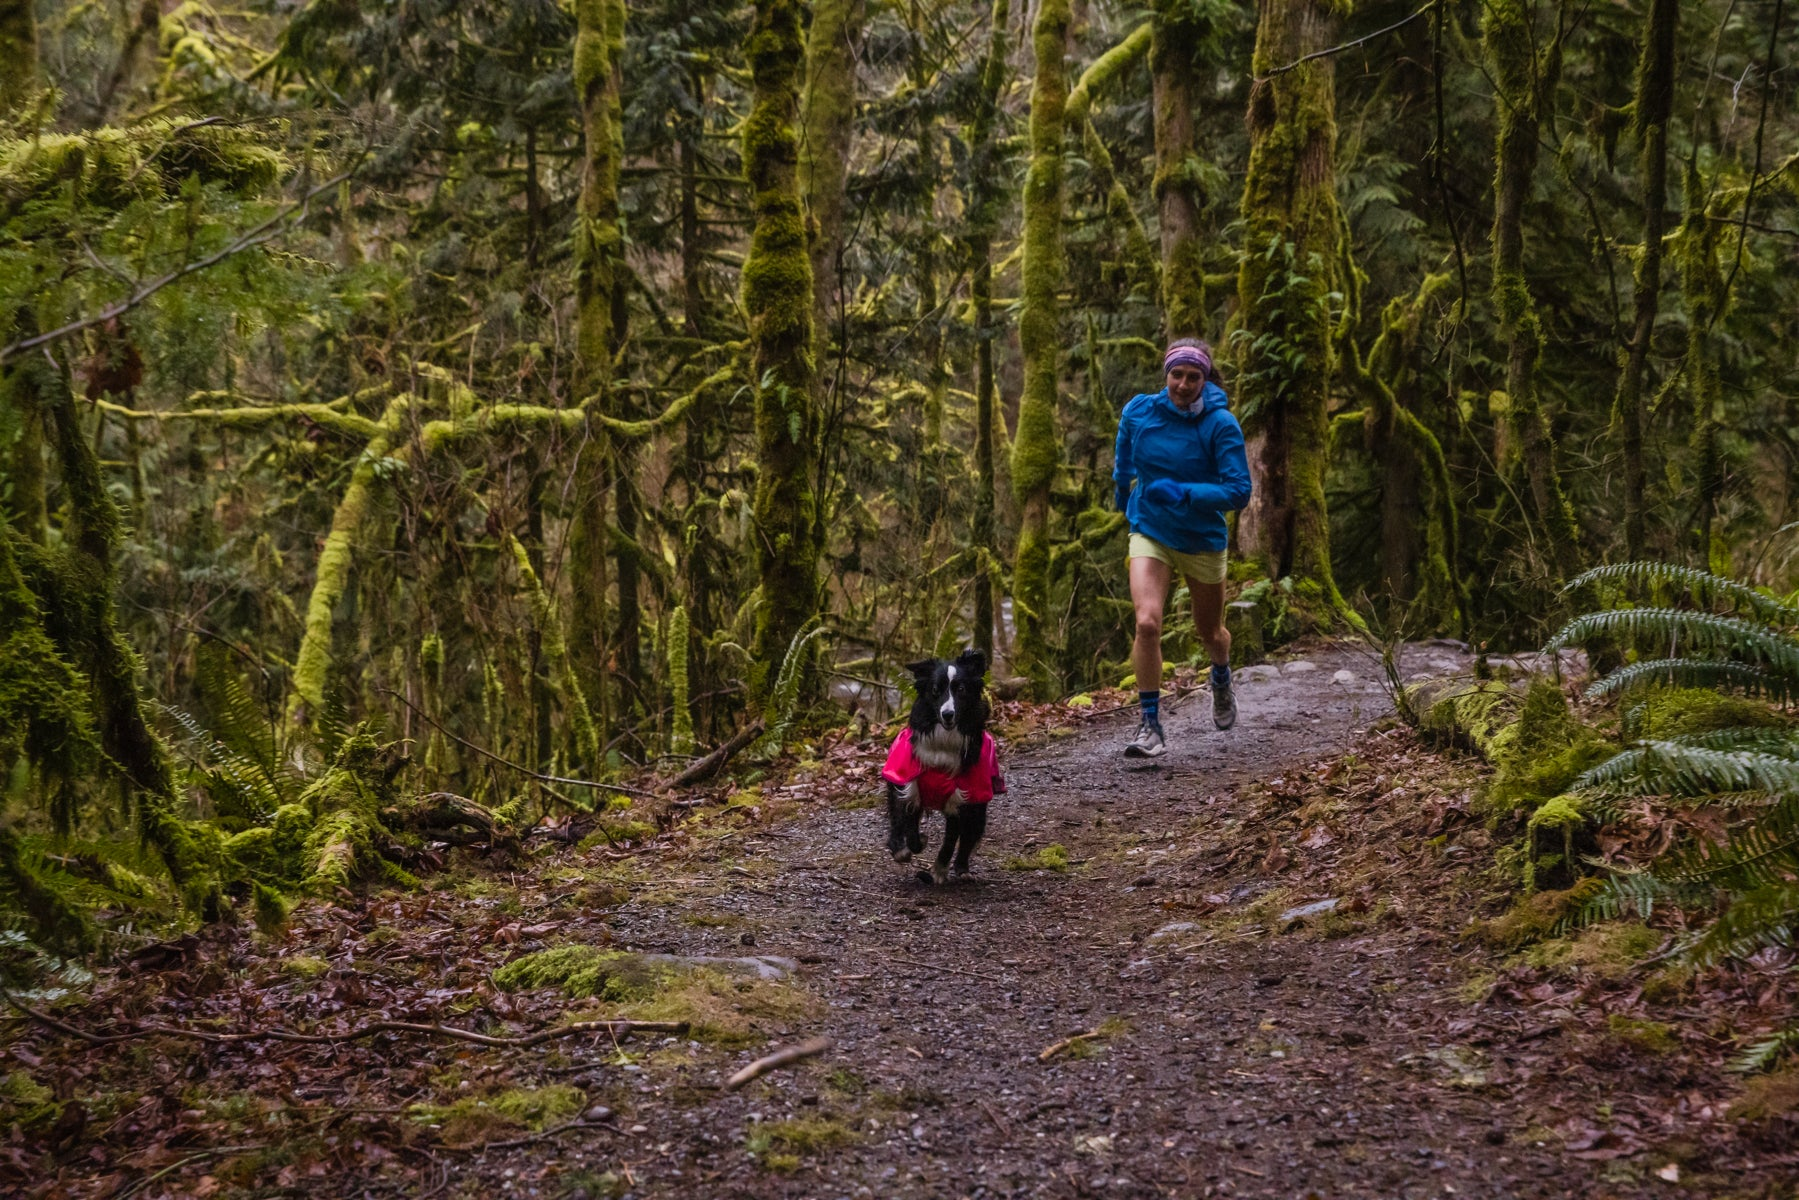 Krissy and PD run in a dense, green forest on a rainy day